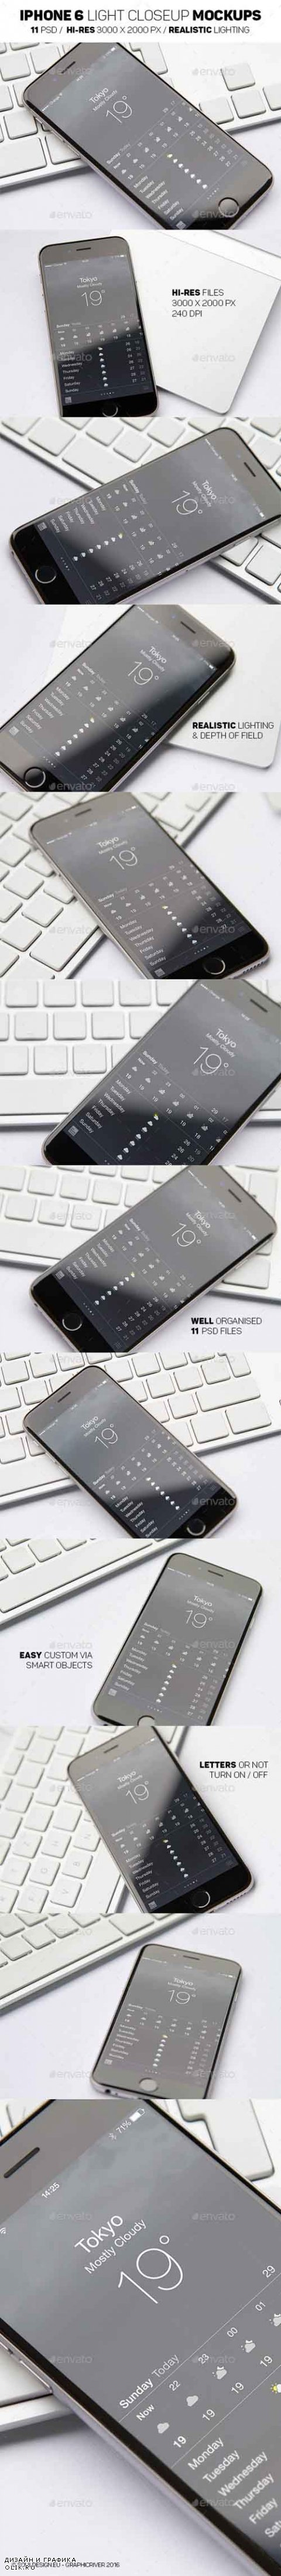 iPhone 6 Light Mockups 14959627